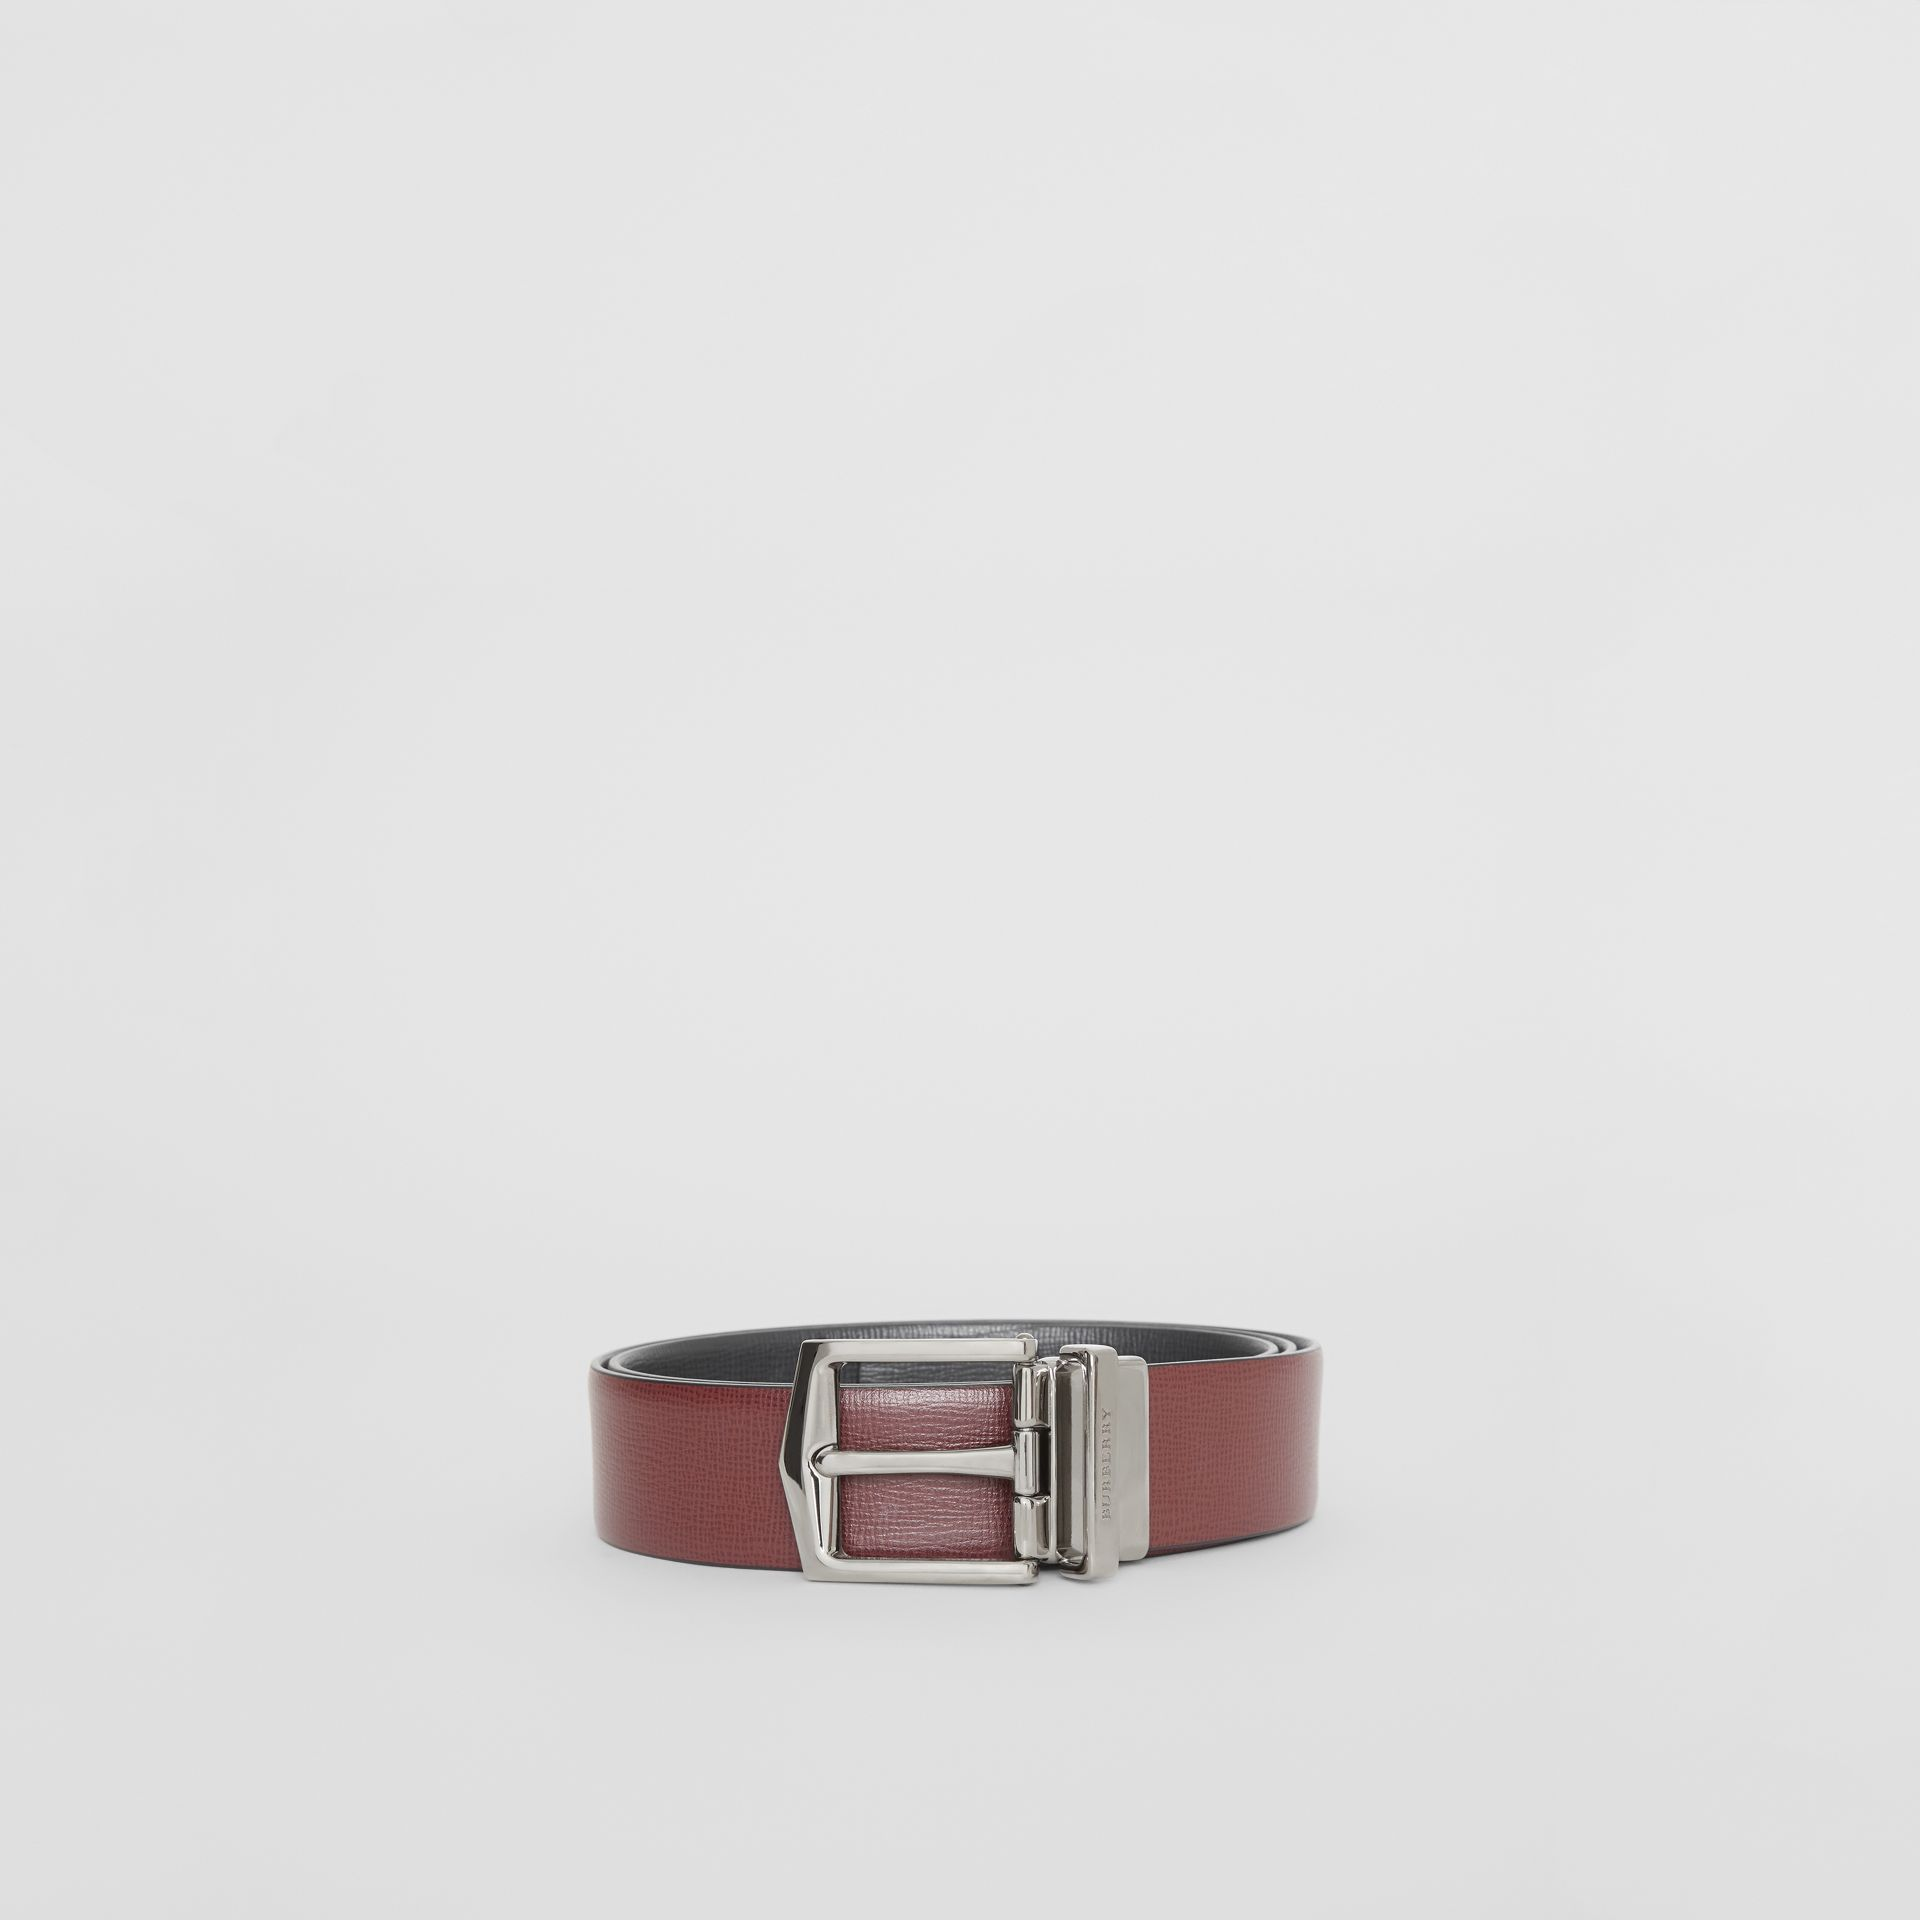 Reversible London Leather Belt in Burgundy Red/black - Men | Burberry Canada - gallery image 4